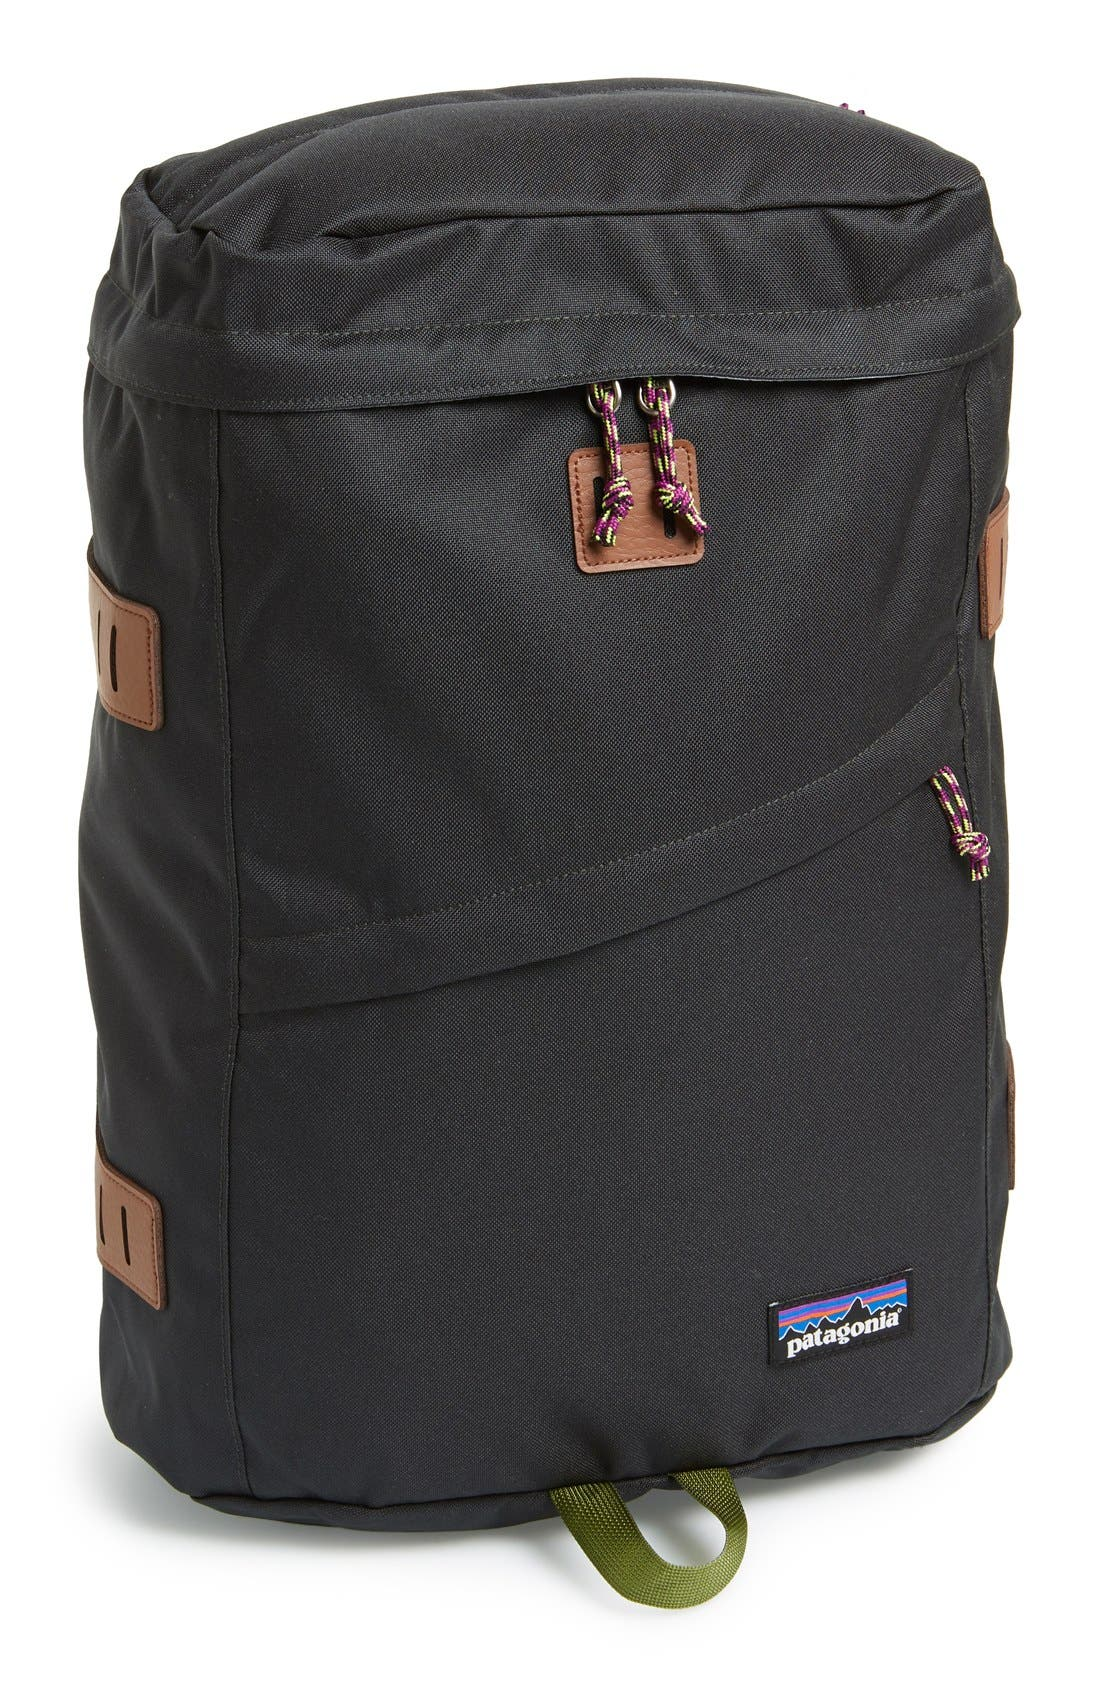 Alternate Image 1 Selected - Patagonia 'Toromiro' Backpack (22 Liter)